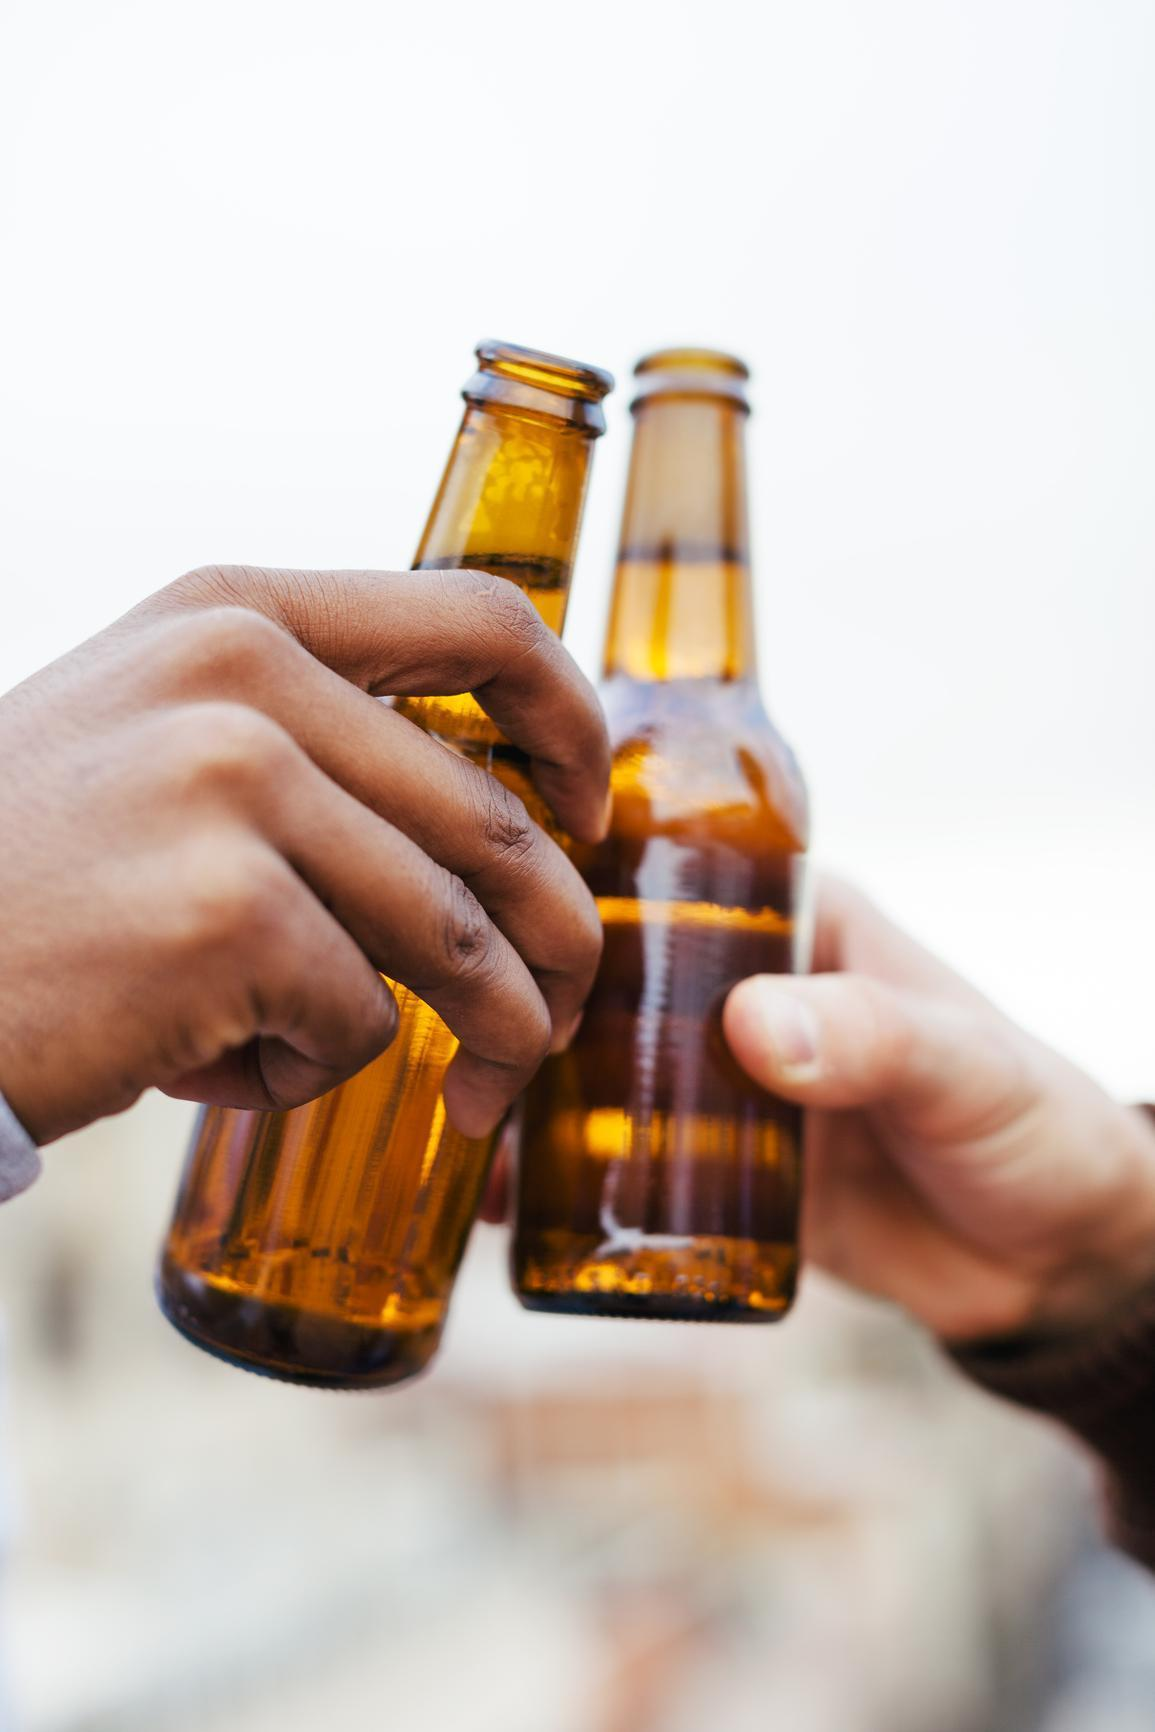 13 Genius Ways to Open a Beer Without a Bottle Opener